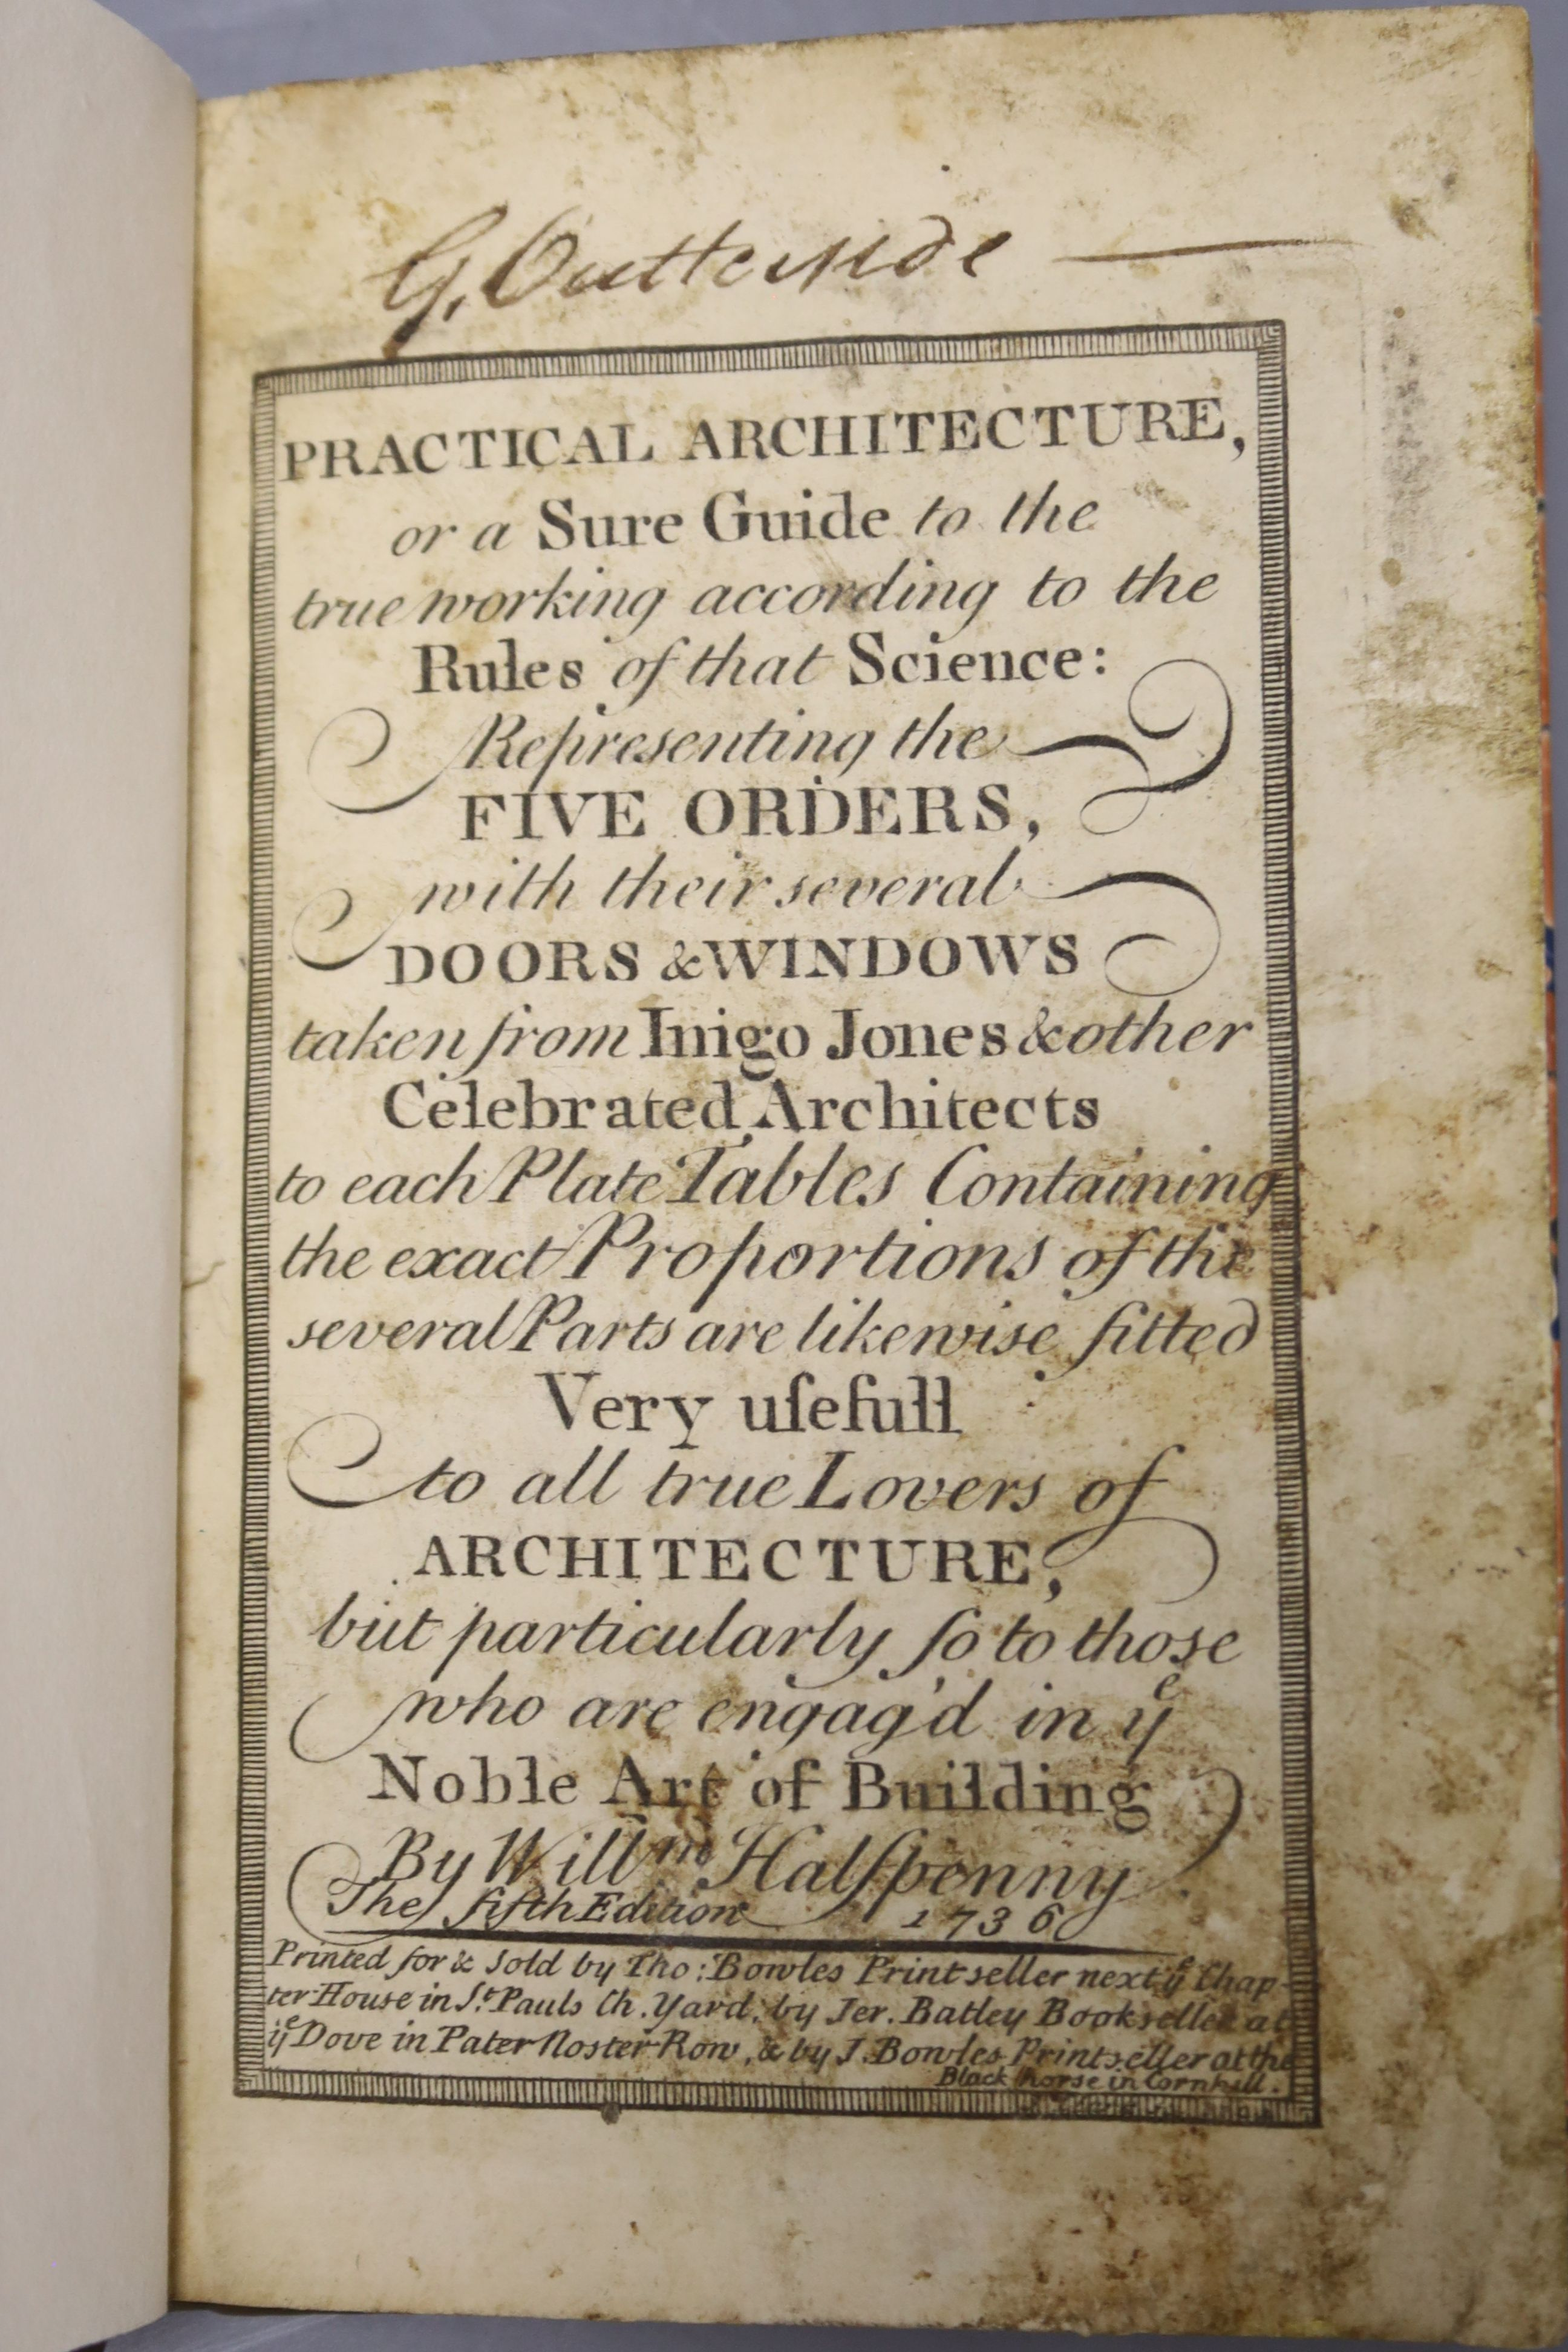 Halfpenny, William – Practical Architecture, or a Sure Guide to the true working according to the - Image 2 of 3